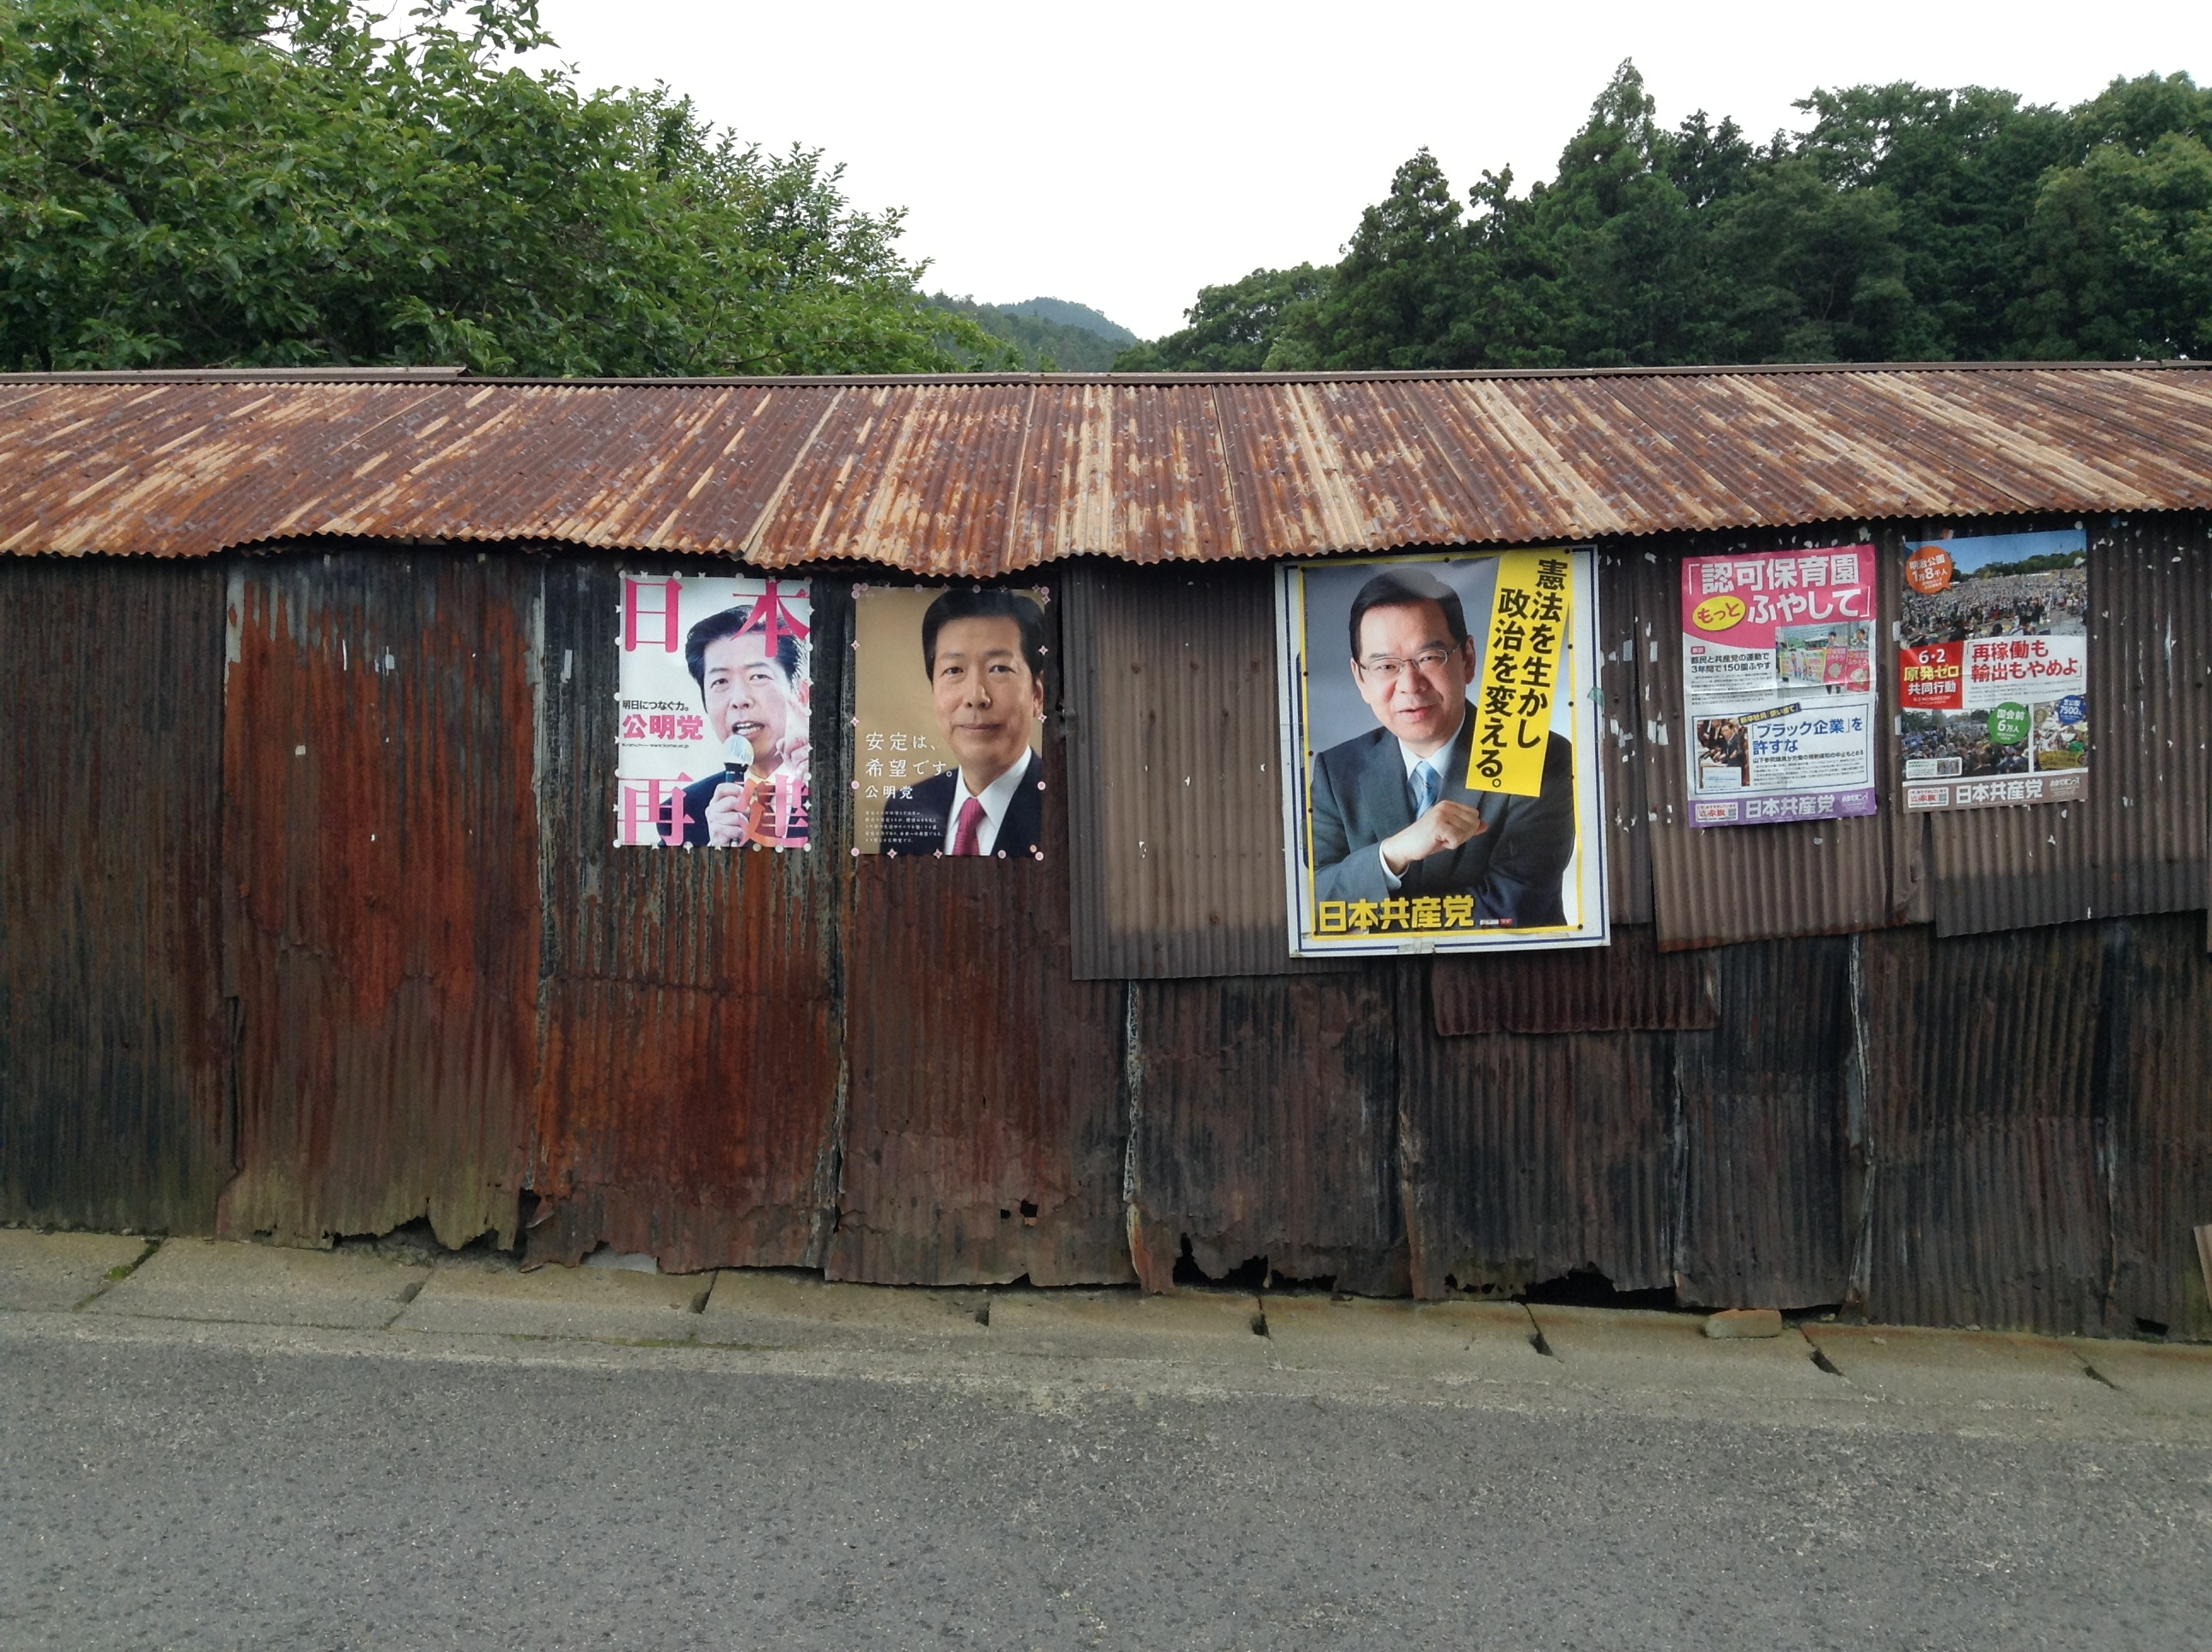 14.Corrugated Politicians